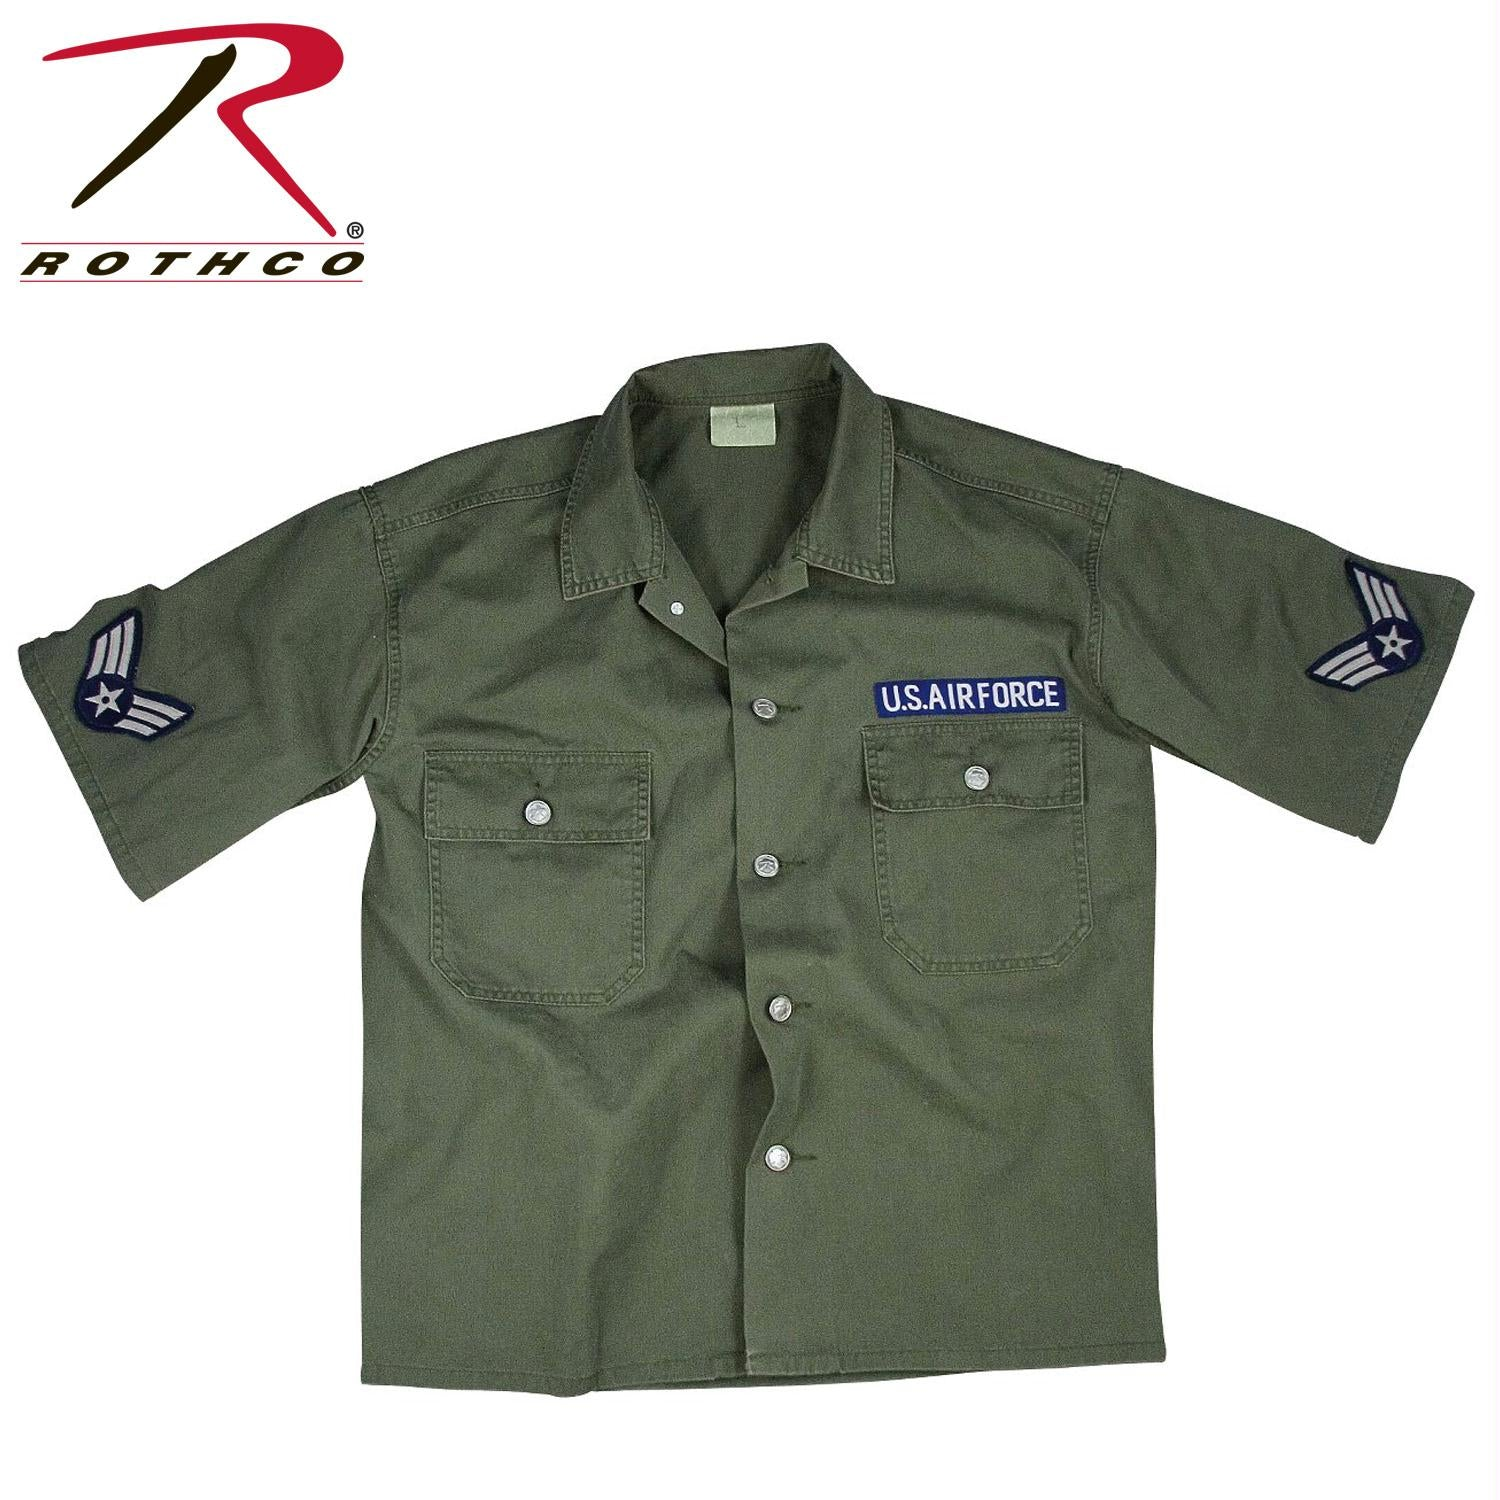 Rothco Vintage Army Air Force Short Sleeve BDU Shirt